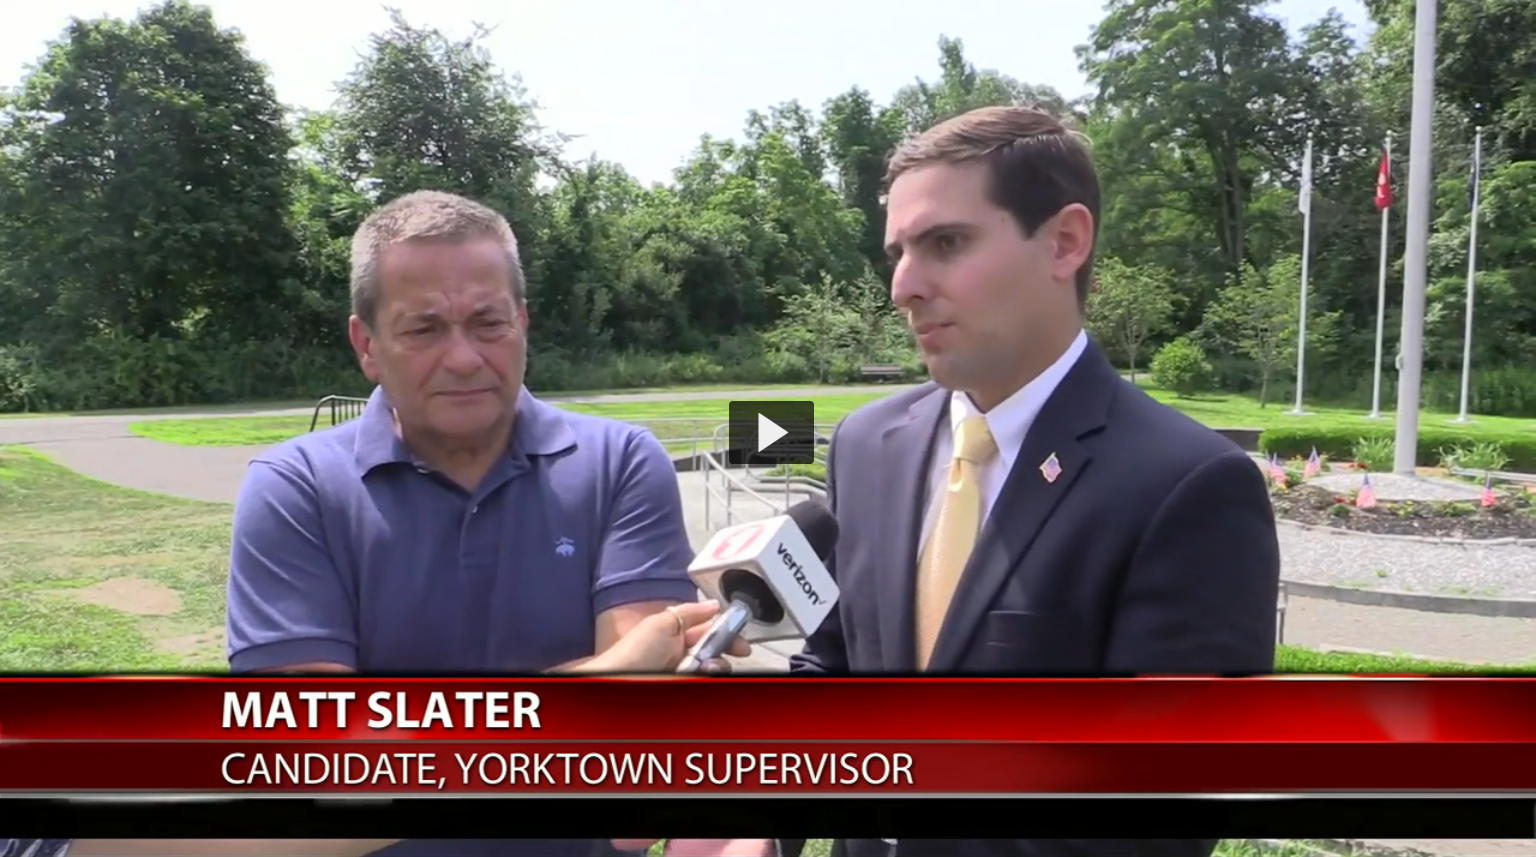 Fios1's Ali Rosen reports that for the 2,000 veterans in Yorktown, its nice to get recognized, but it would be even nicer if the town offered more veteran-related services. Town Supervisor candidate Matt Slater and his running mates want to put a plan in place to do so within their first 30 days in office […]